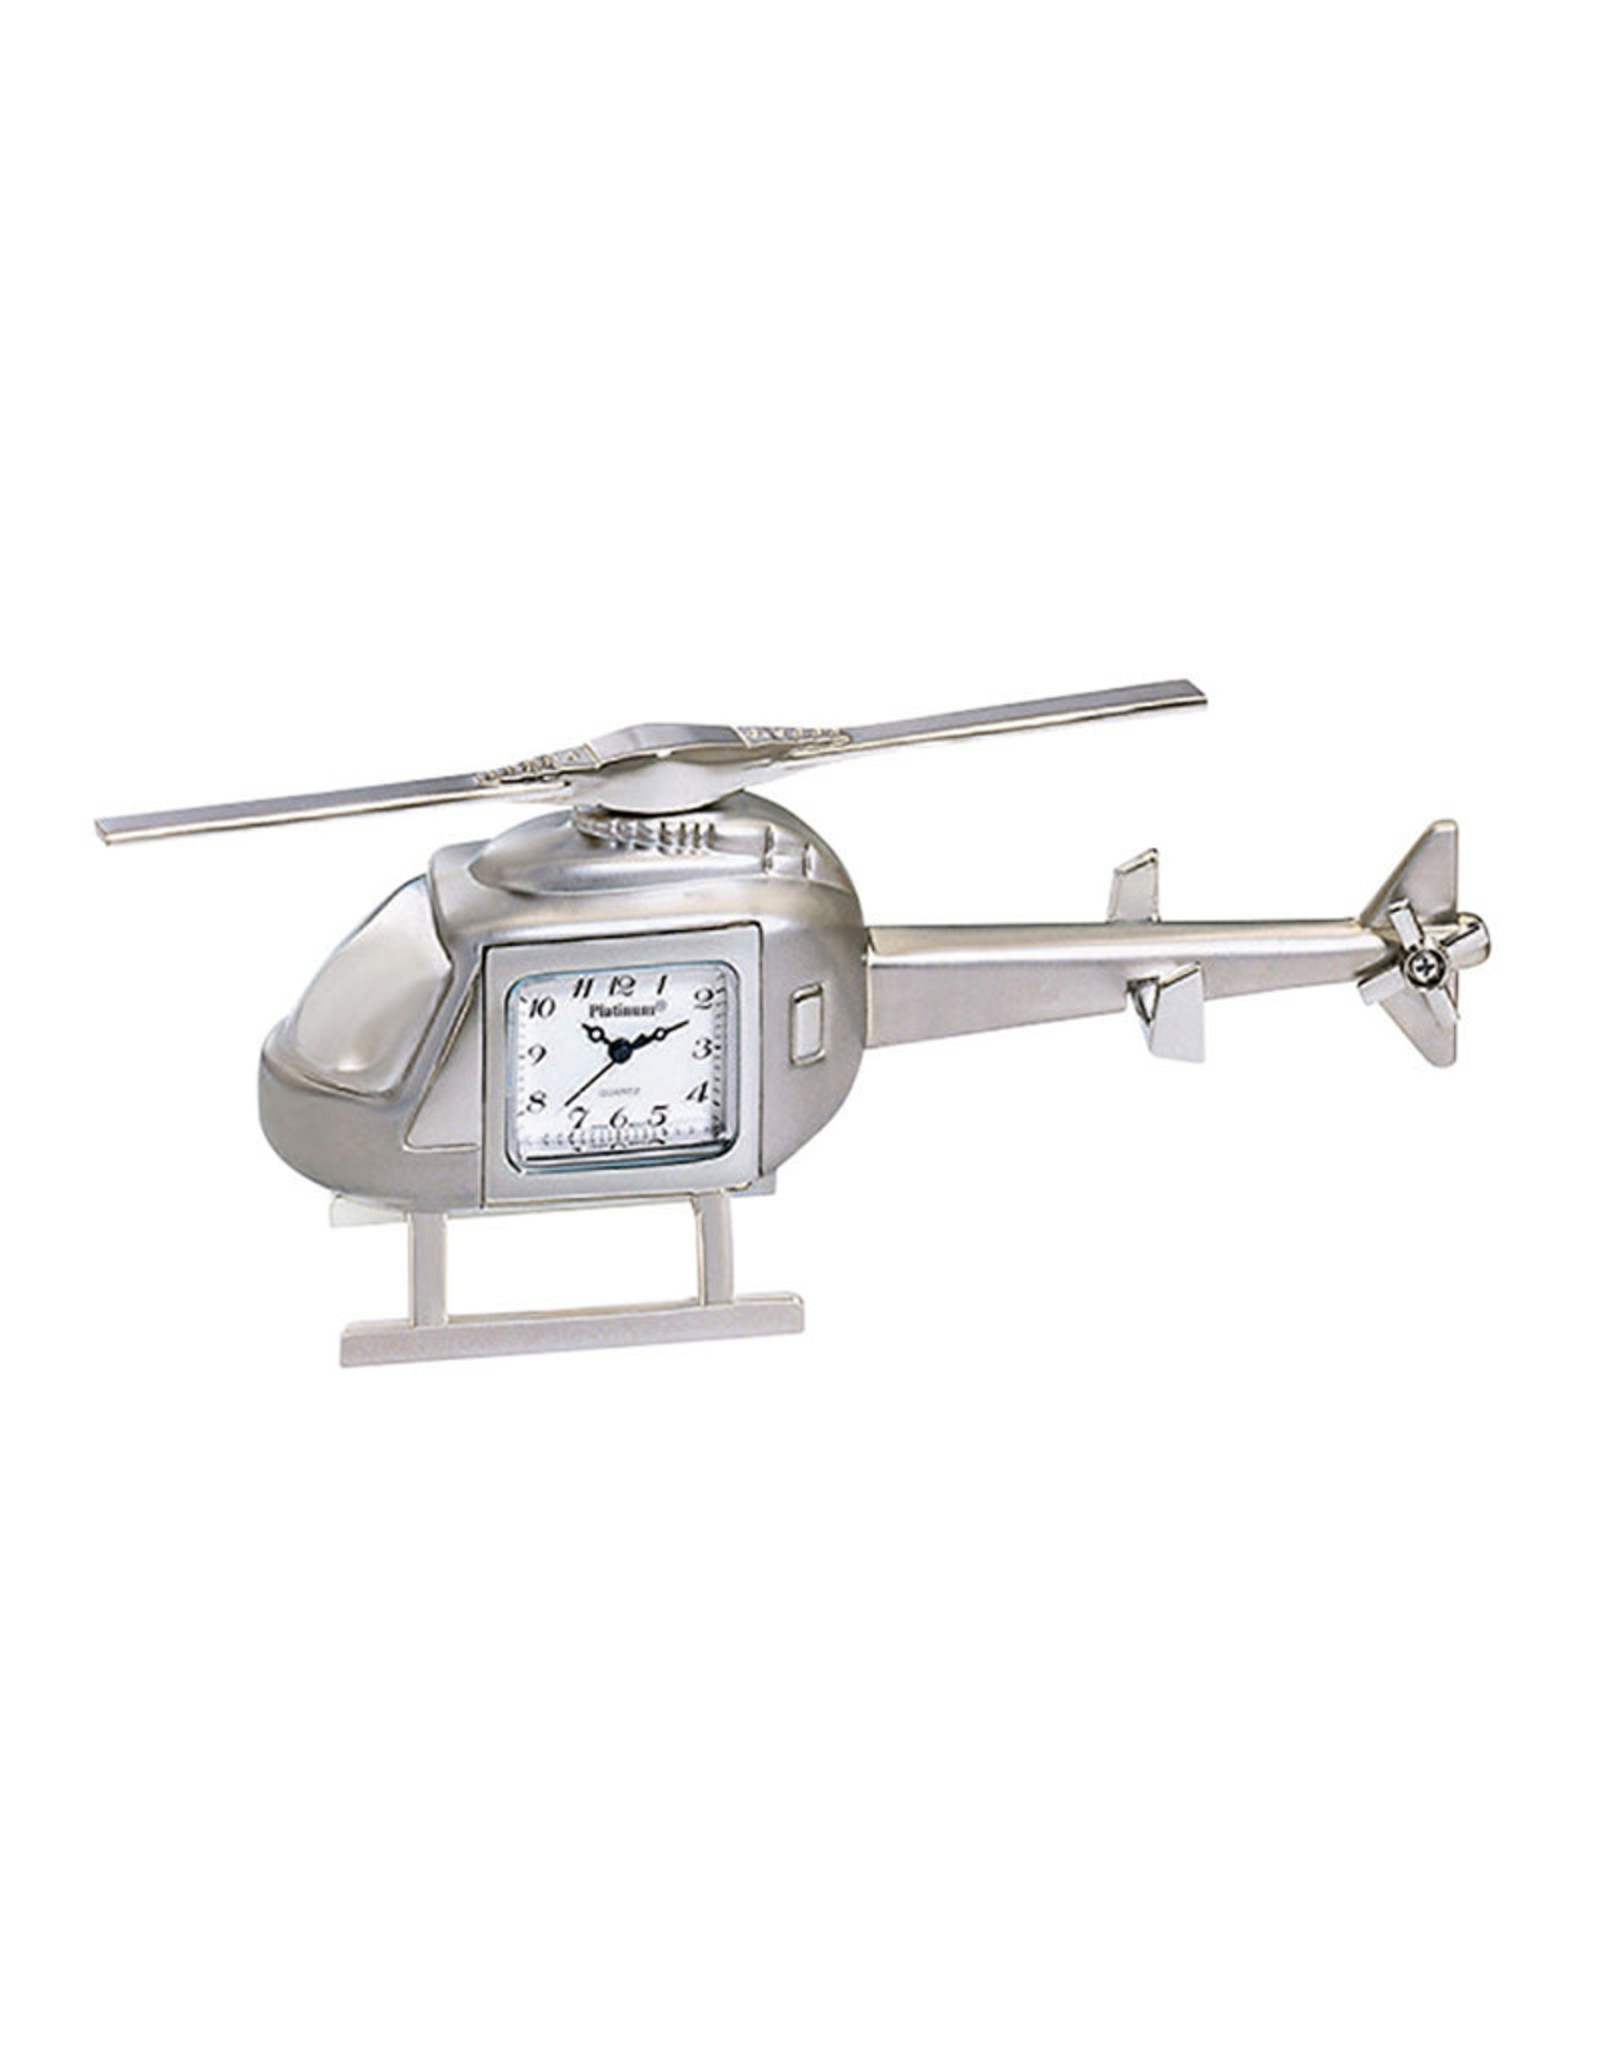 SANIS HELICOPTER MINIATURE CLOCK